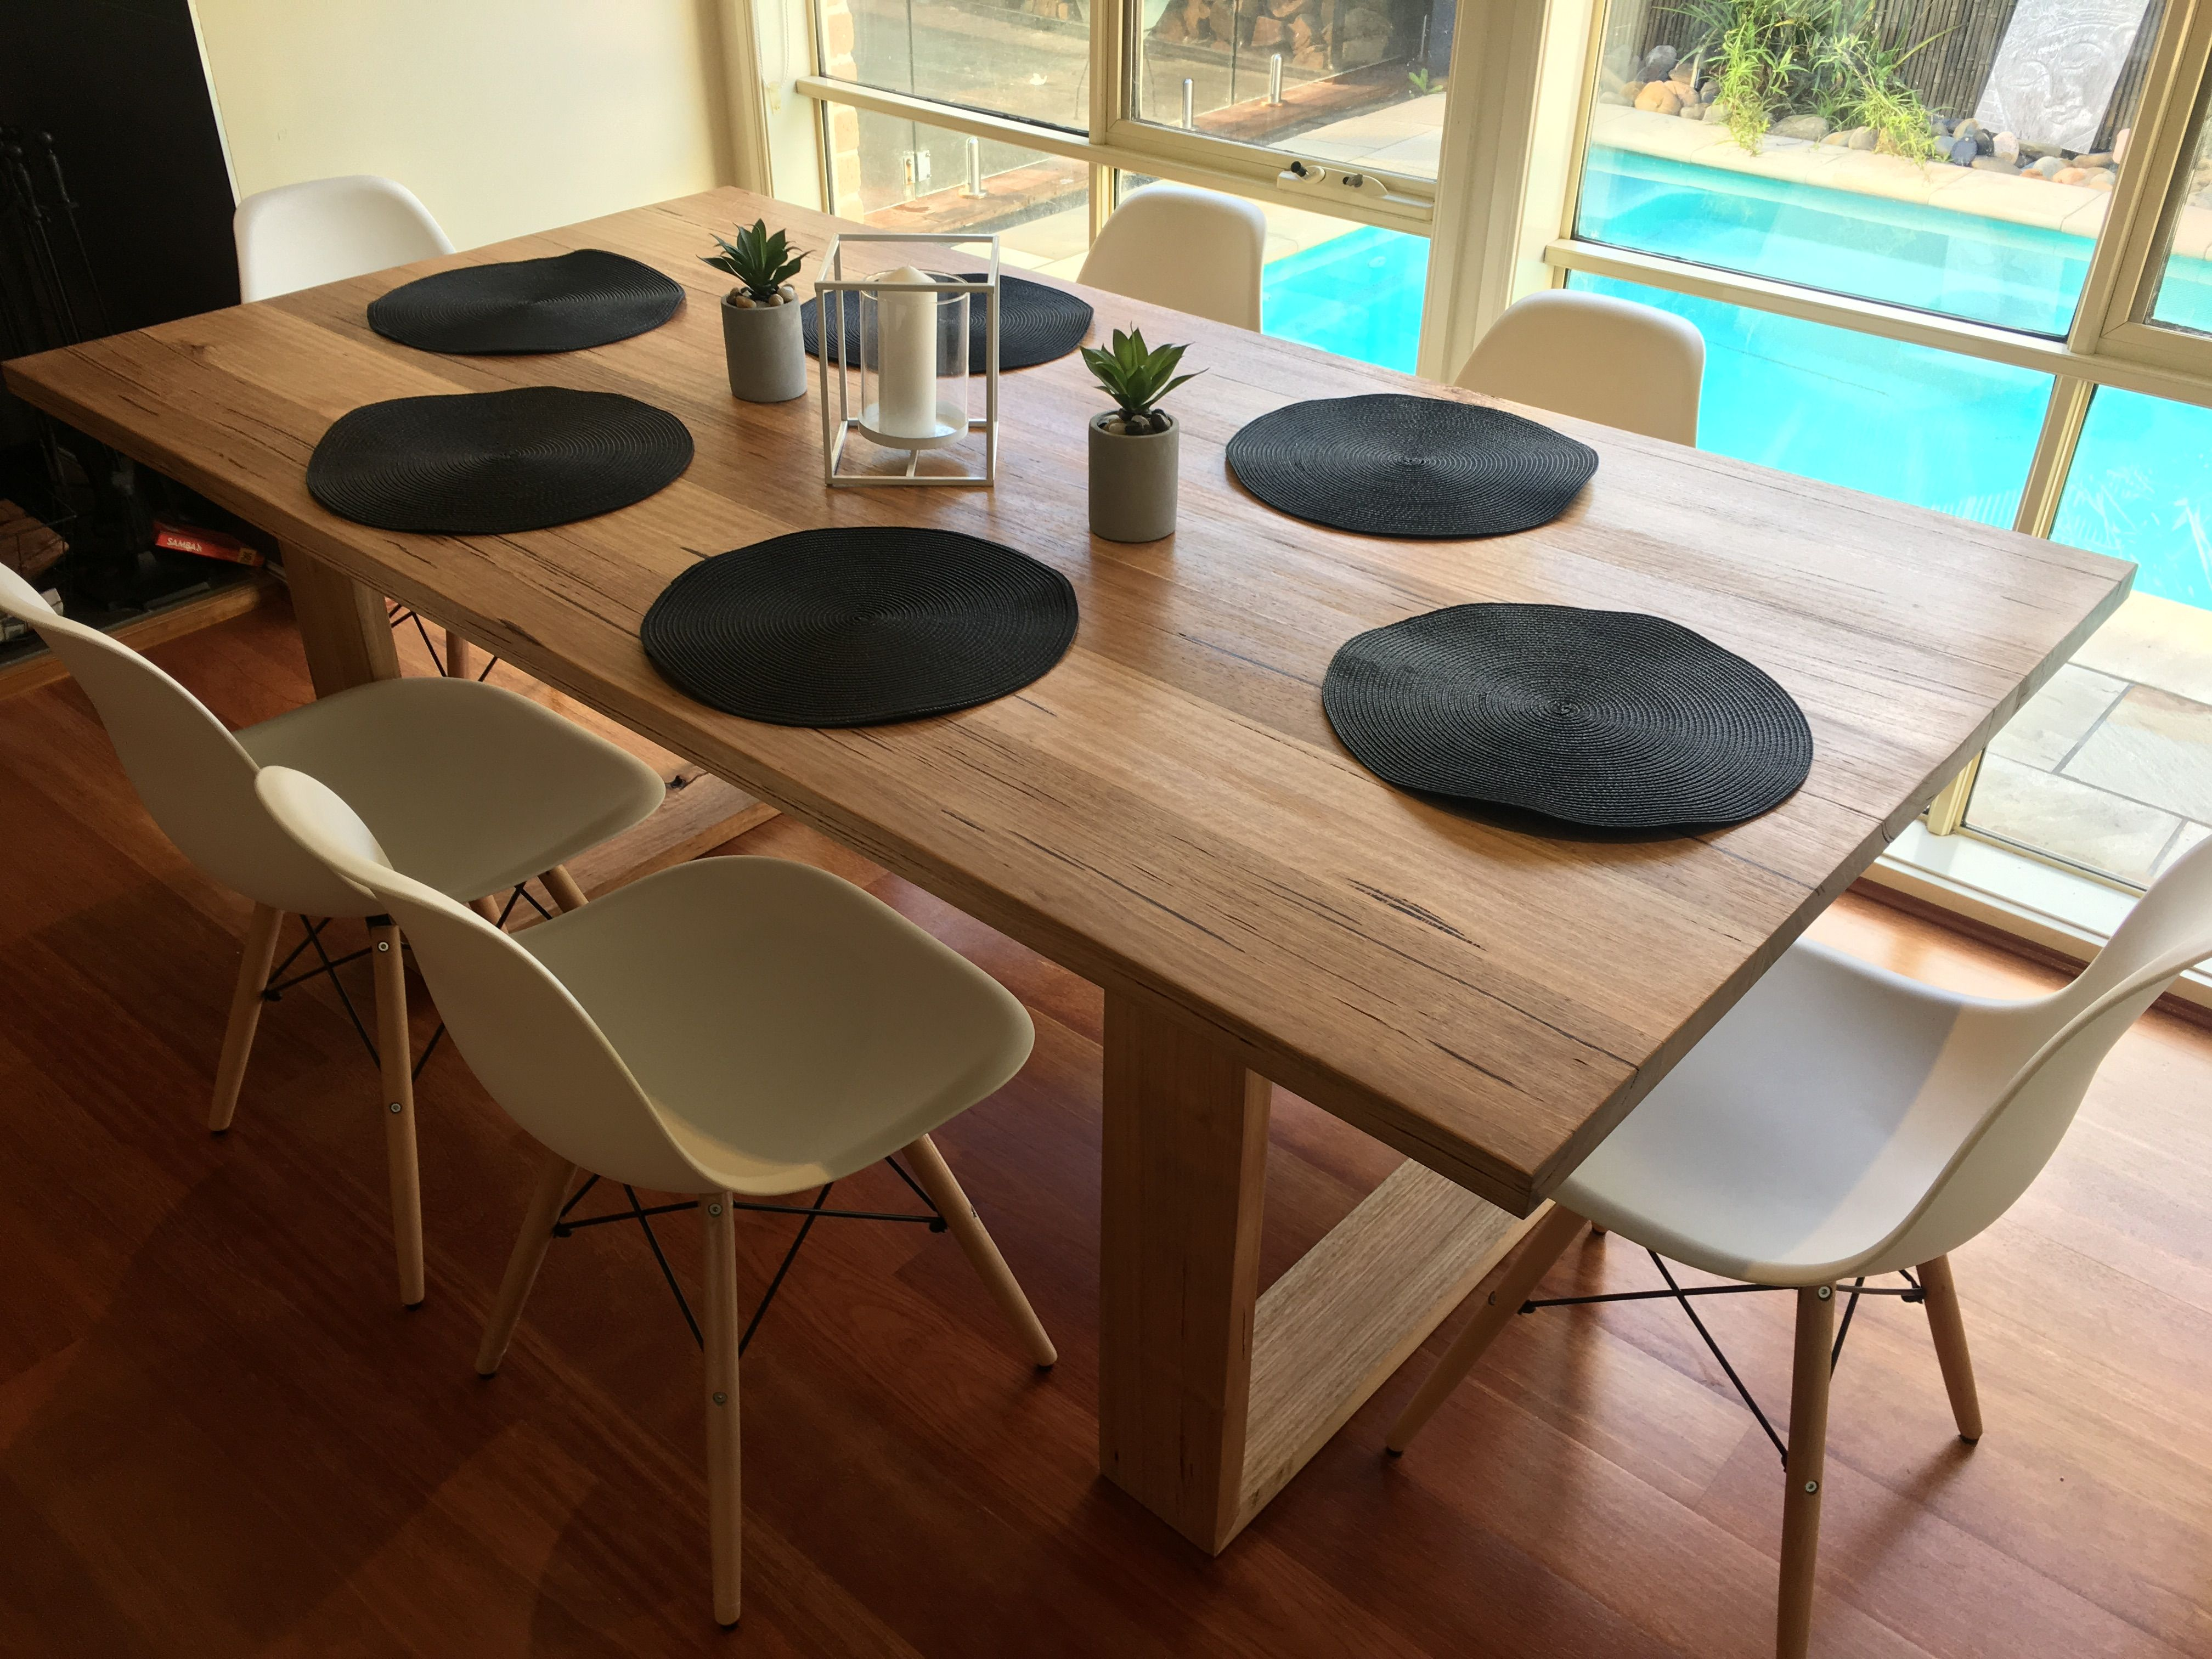 Recycled messmate dining table with wooden legs